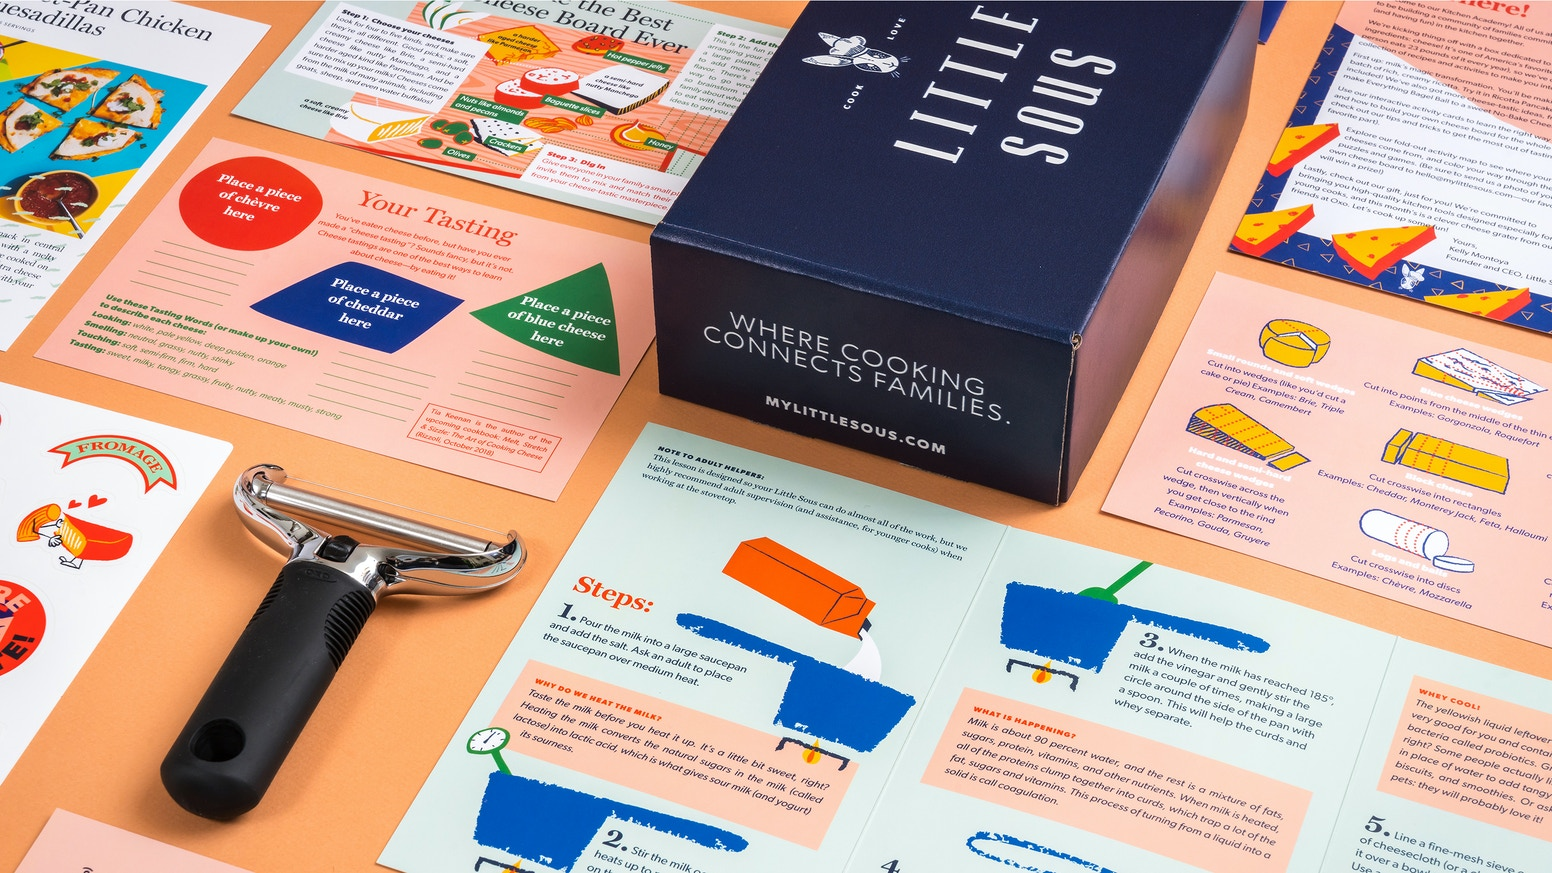 A monthly box that teaches and empowers the next generation of cooks—and connects families in the kitchen.